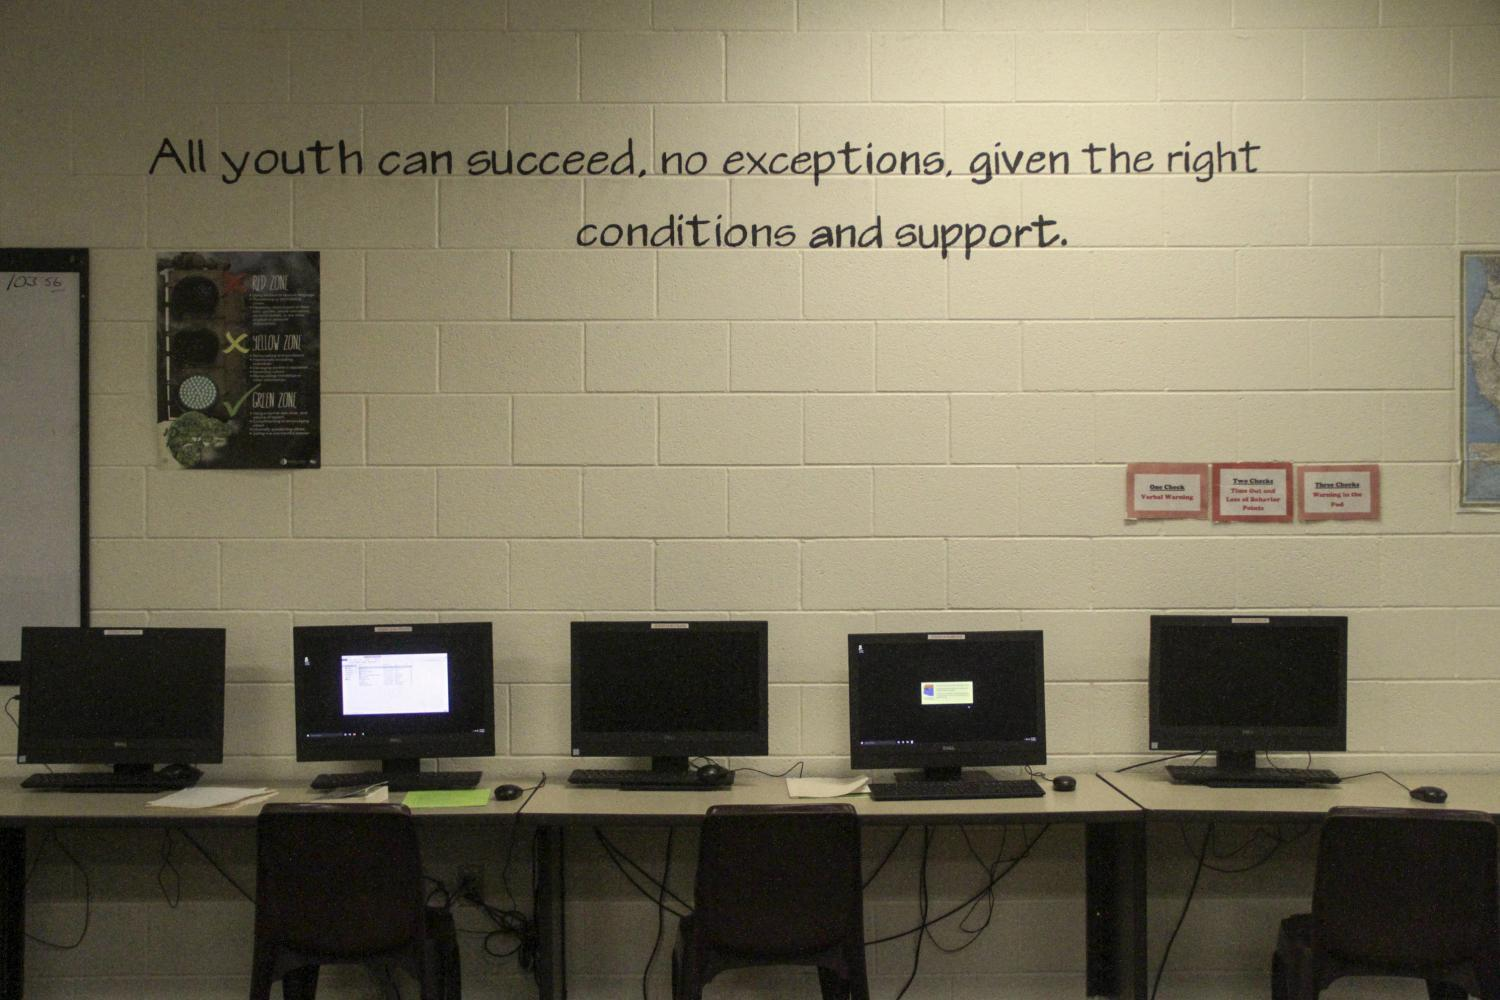 Yavapai County Juvenile Justice Center classroom